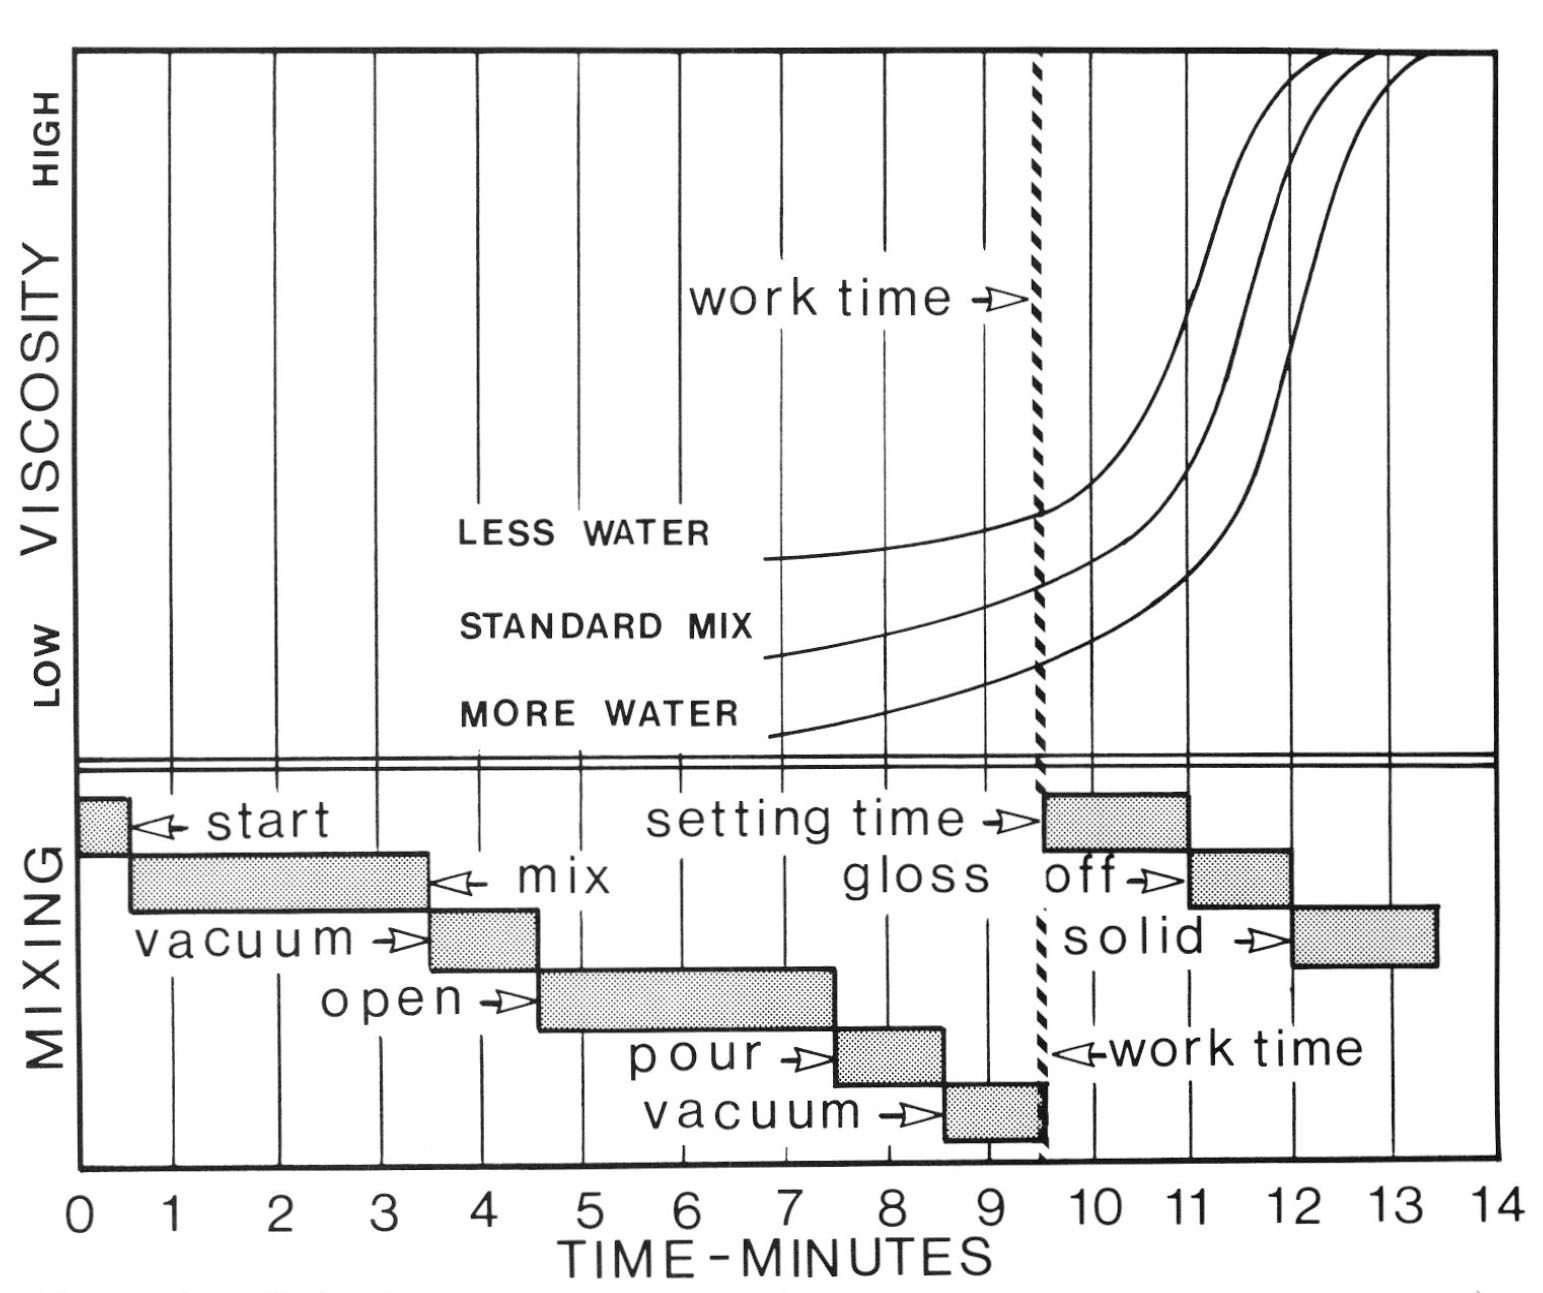 hight resolution of 4 a comparison of the investment viscosity and the mixing cycle illustrates how the system characteristics and its application are related